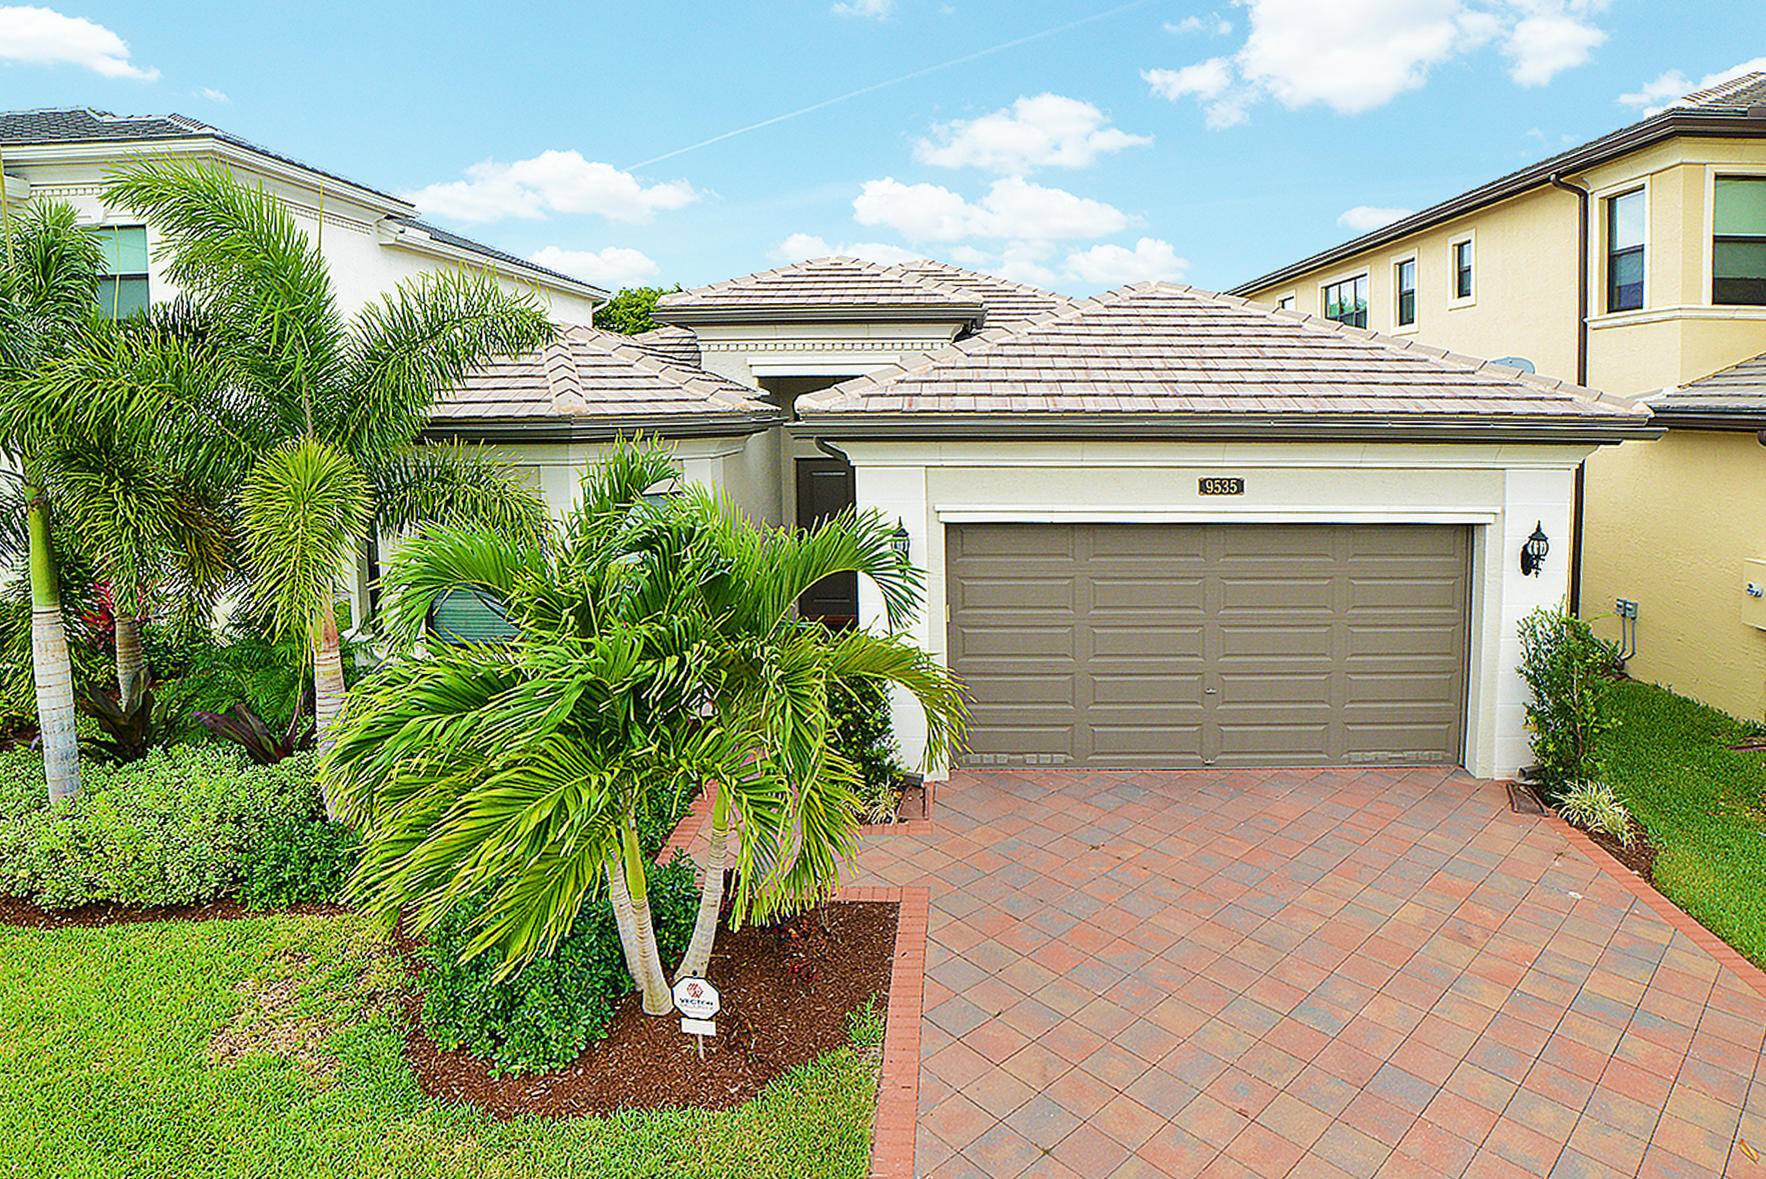 9535 Eden Roc Court  Delray Beach, FL 33446